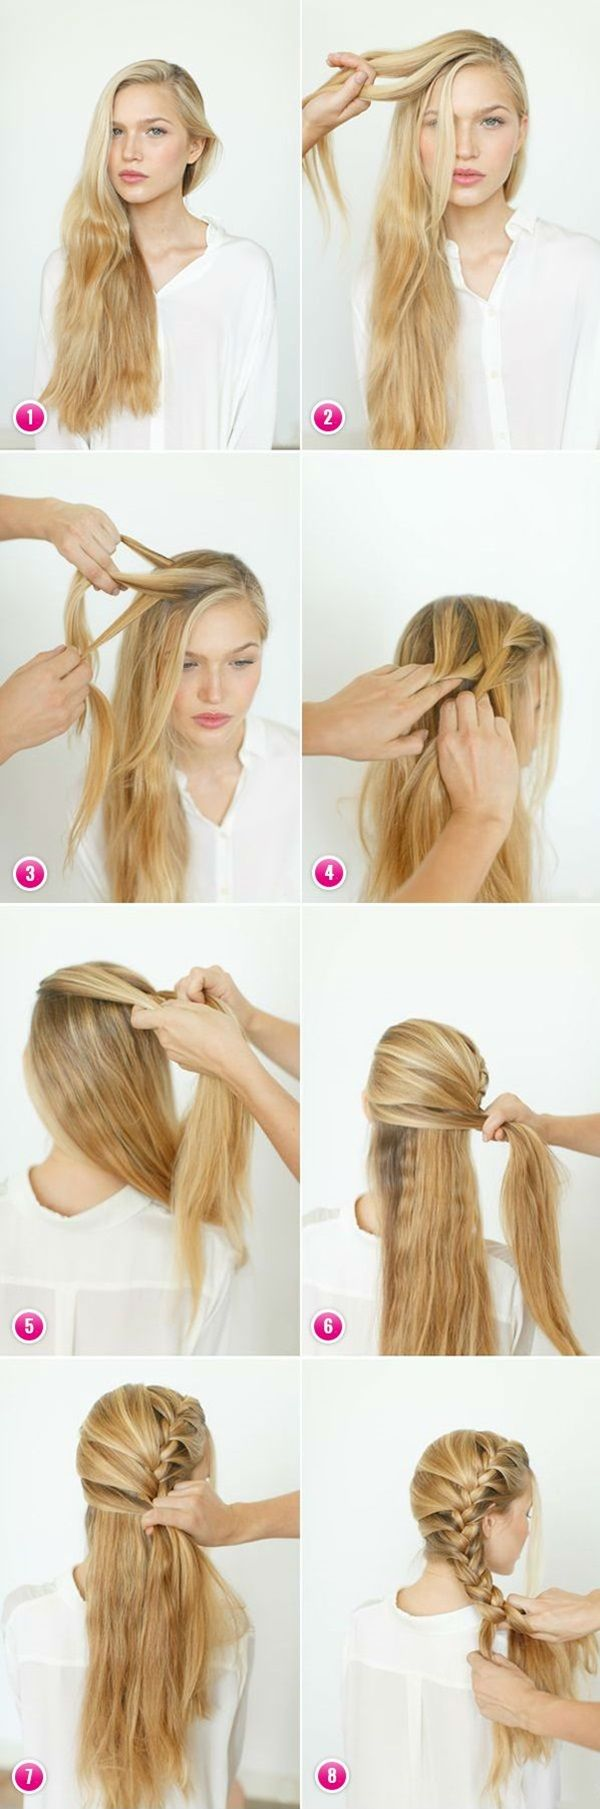 25 Best Ideas About Fast Hairstyles On Pinterest Fast Easy